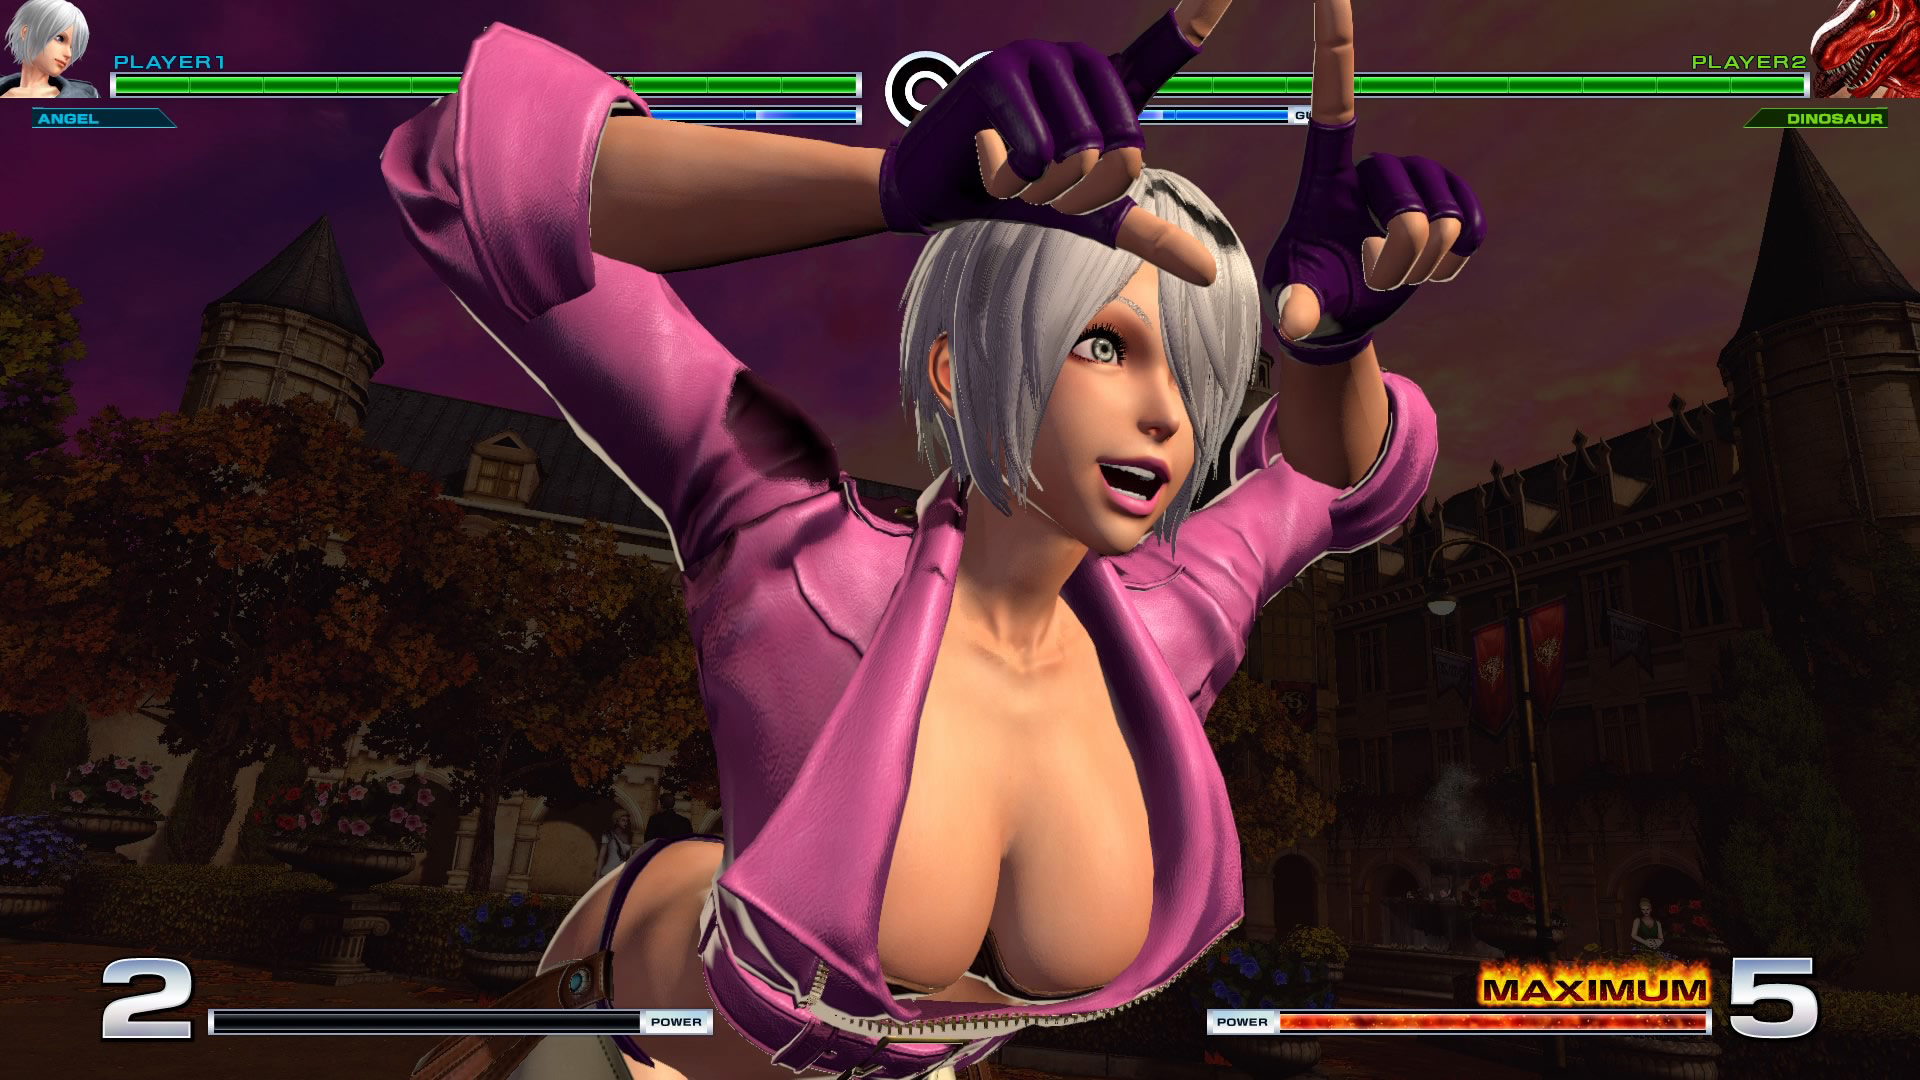 King of Fighters 14 1.10 graphics update 8 out of 60 image gallery